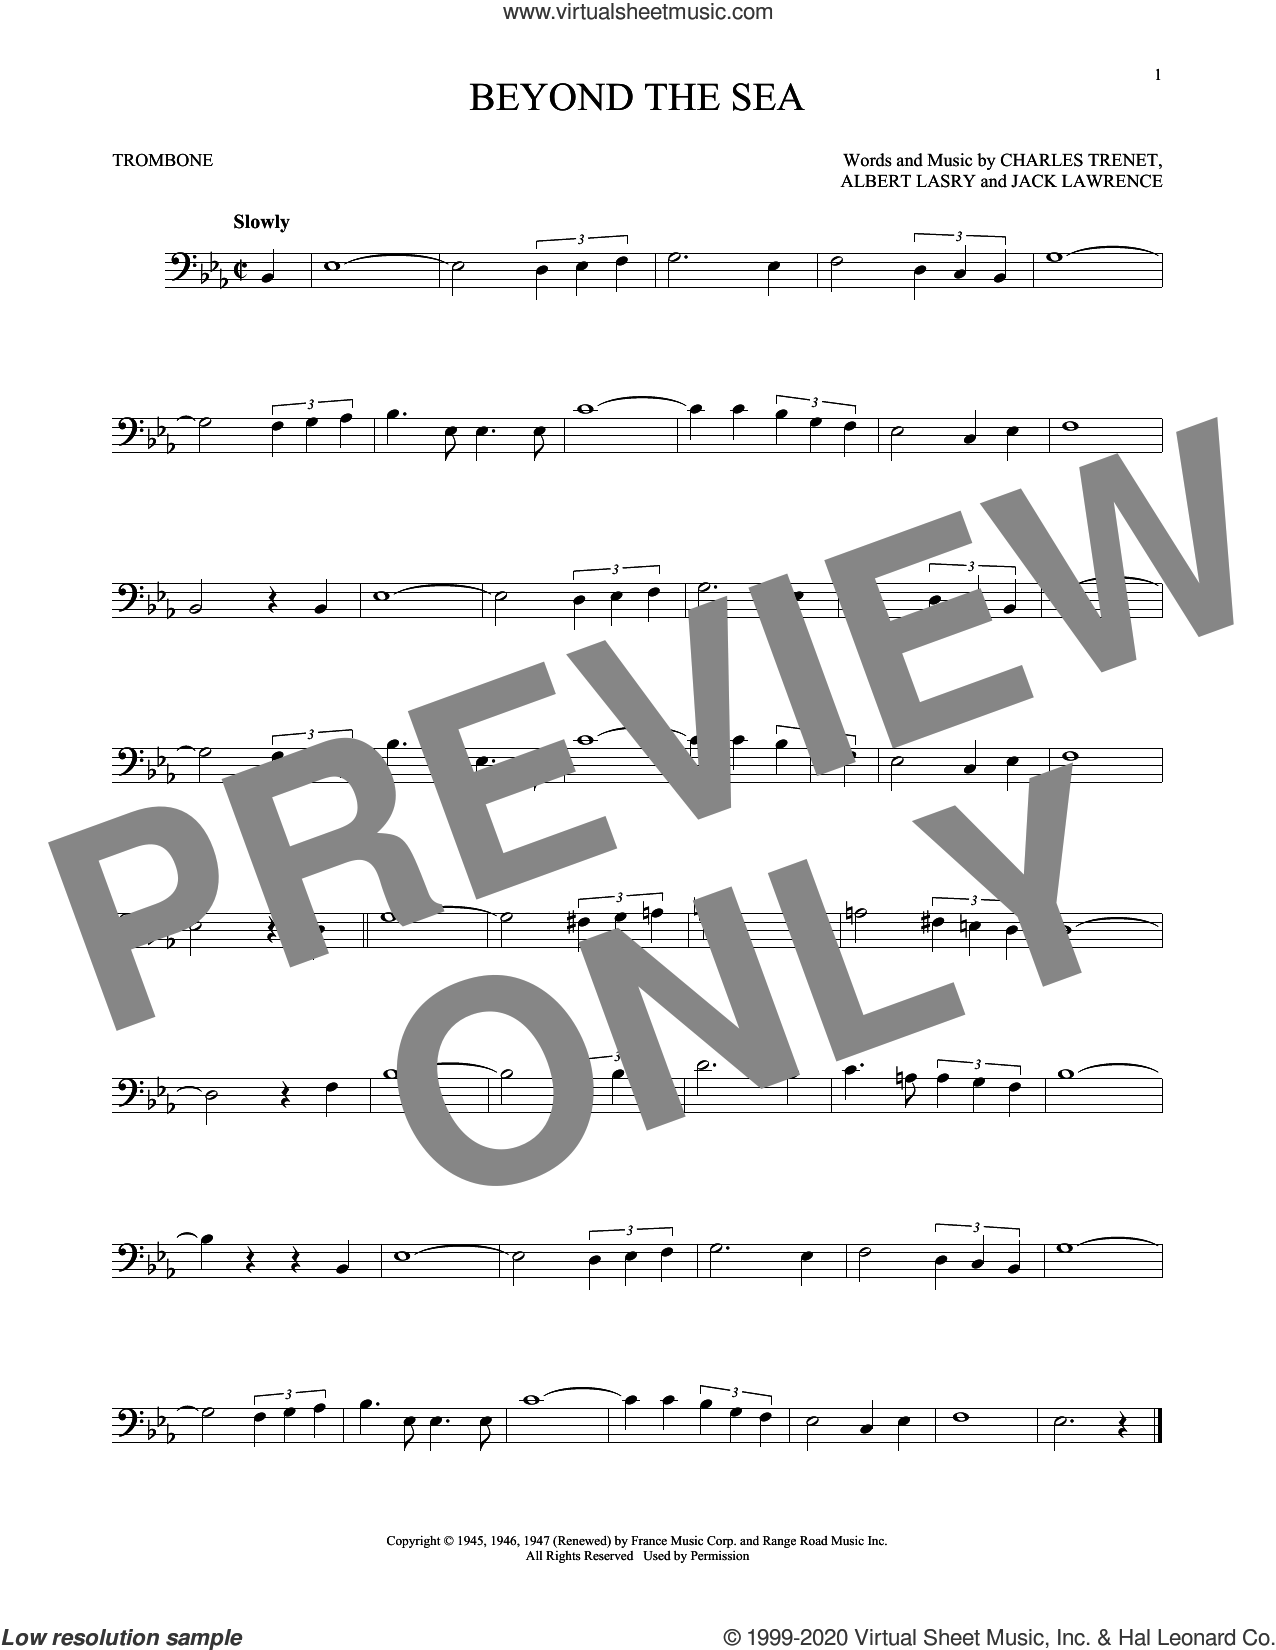 Beyond The Sea sheet music for trombone solo by Bobby Darin, Roger Williams, Albert Lasry, Charles Trenet and Jack Lawrence, intermediate skill level